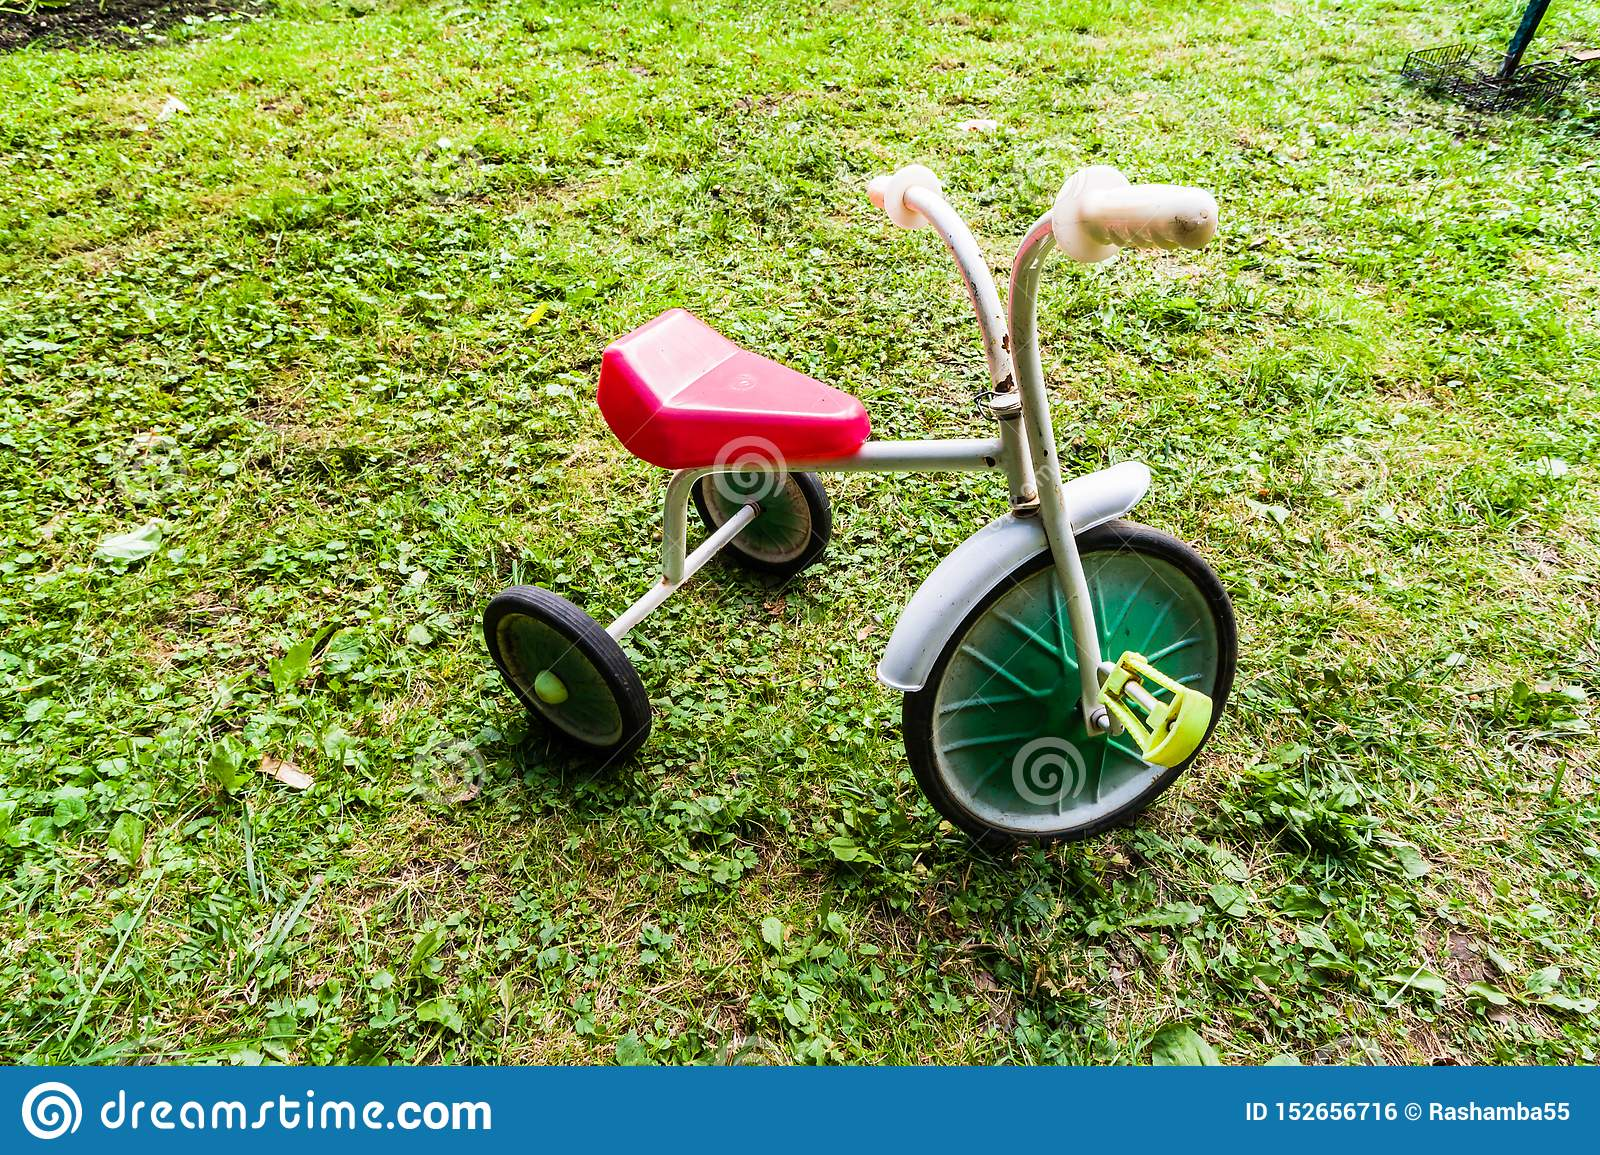 Old Childrens Tricycle Bike Retro Three Wheeled Bicycle Of The 80s Stock Photo Image Of Vintage Wheels 152656716